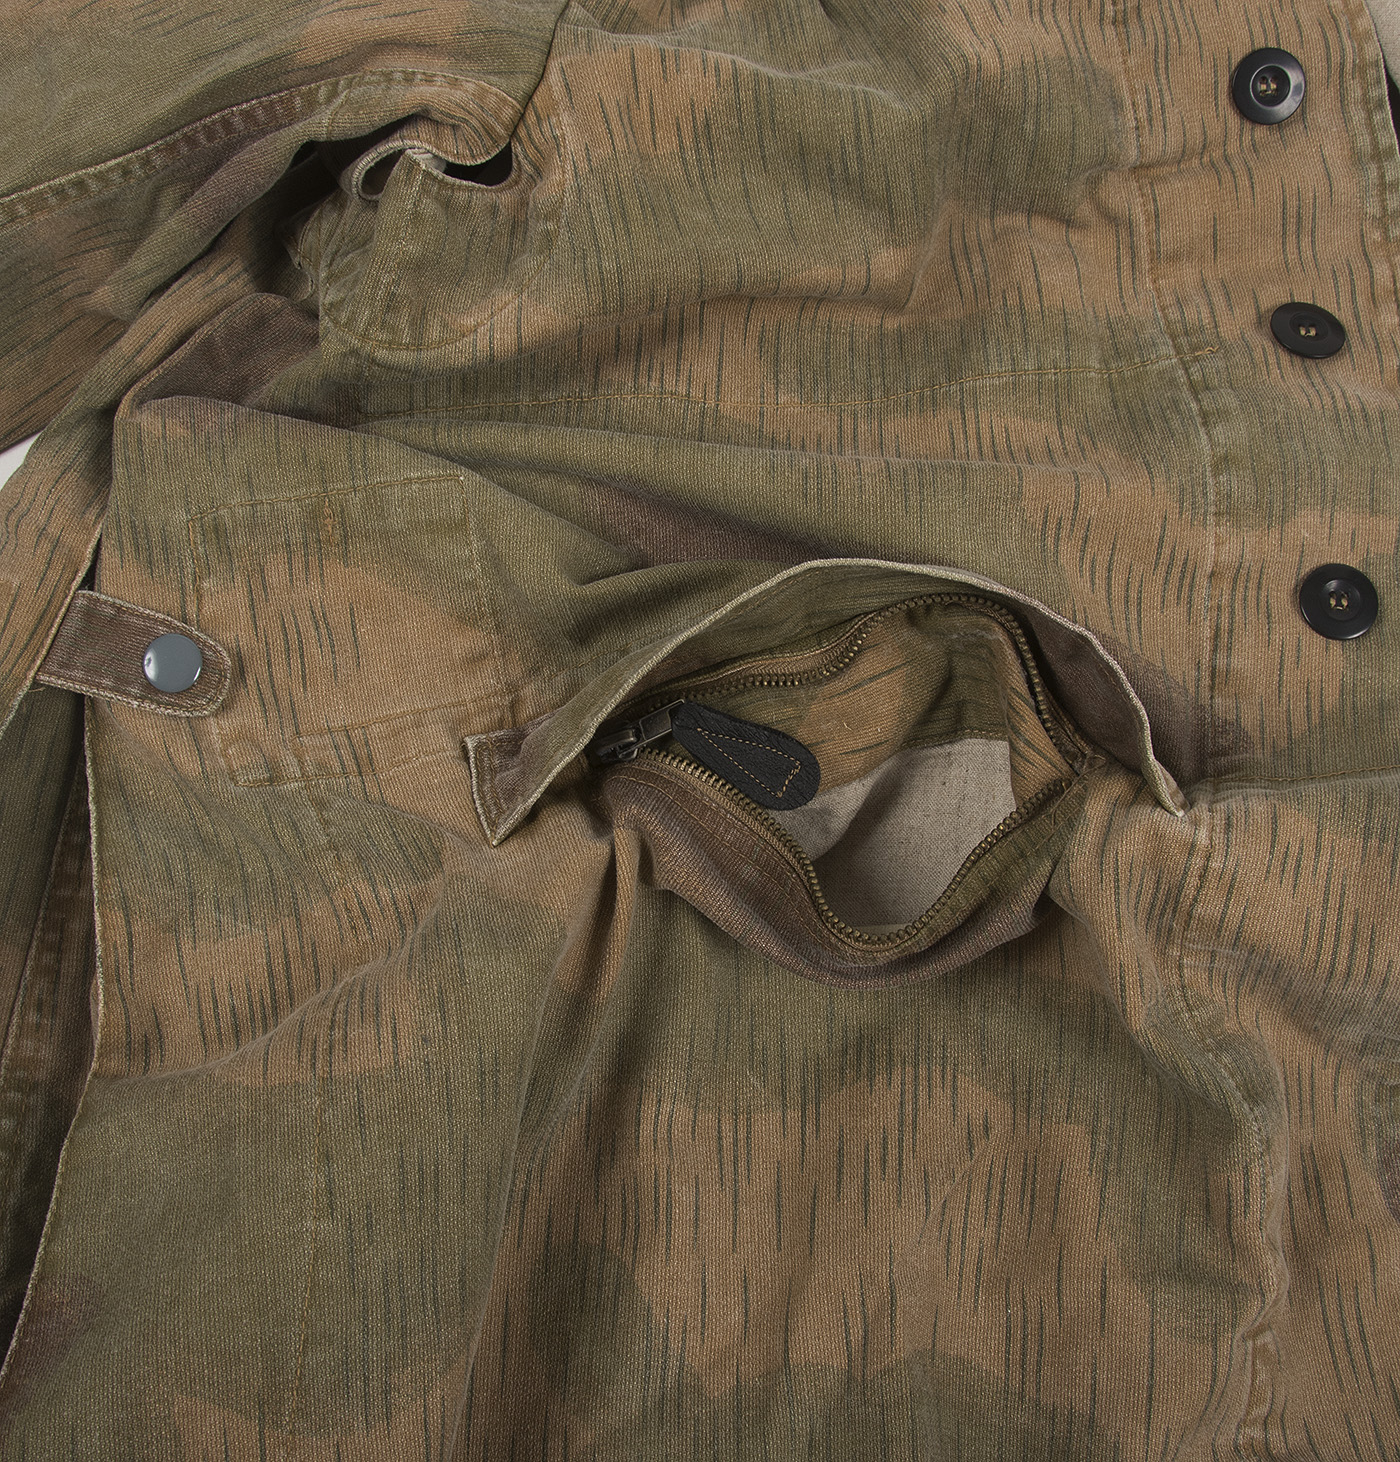 0179661a79da3 Reproduction Fallschirmjäger smck by Miltec. The Marsh pattern jackets  appeared late in 1943 and became common after D-day. They were issued  throughout the ...